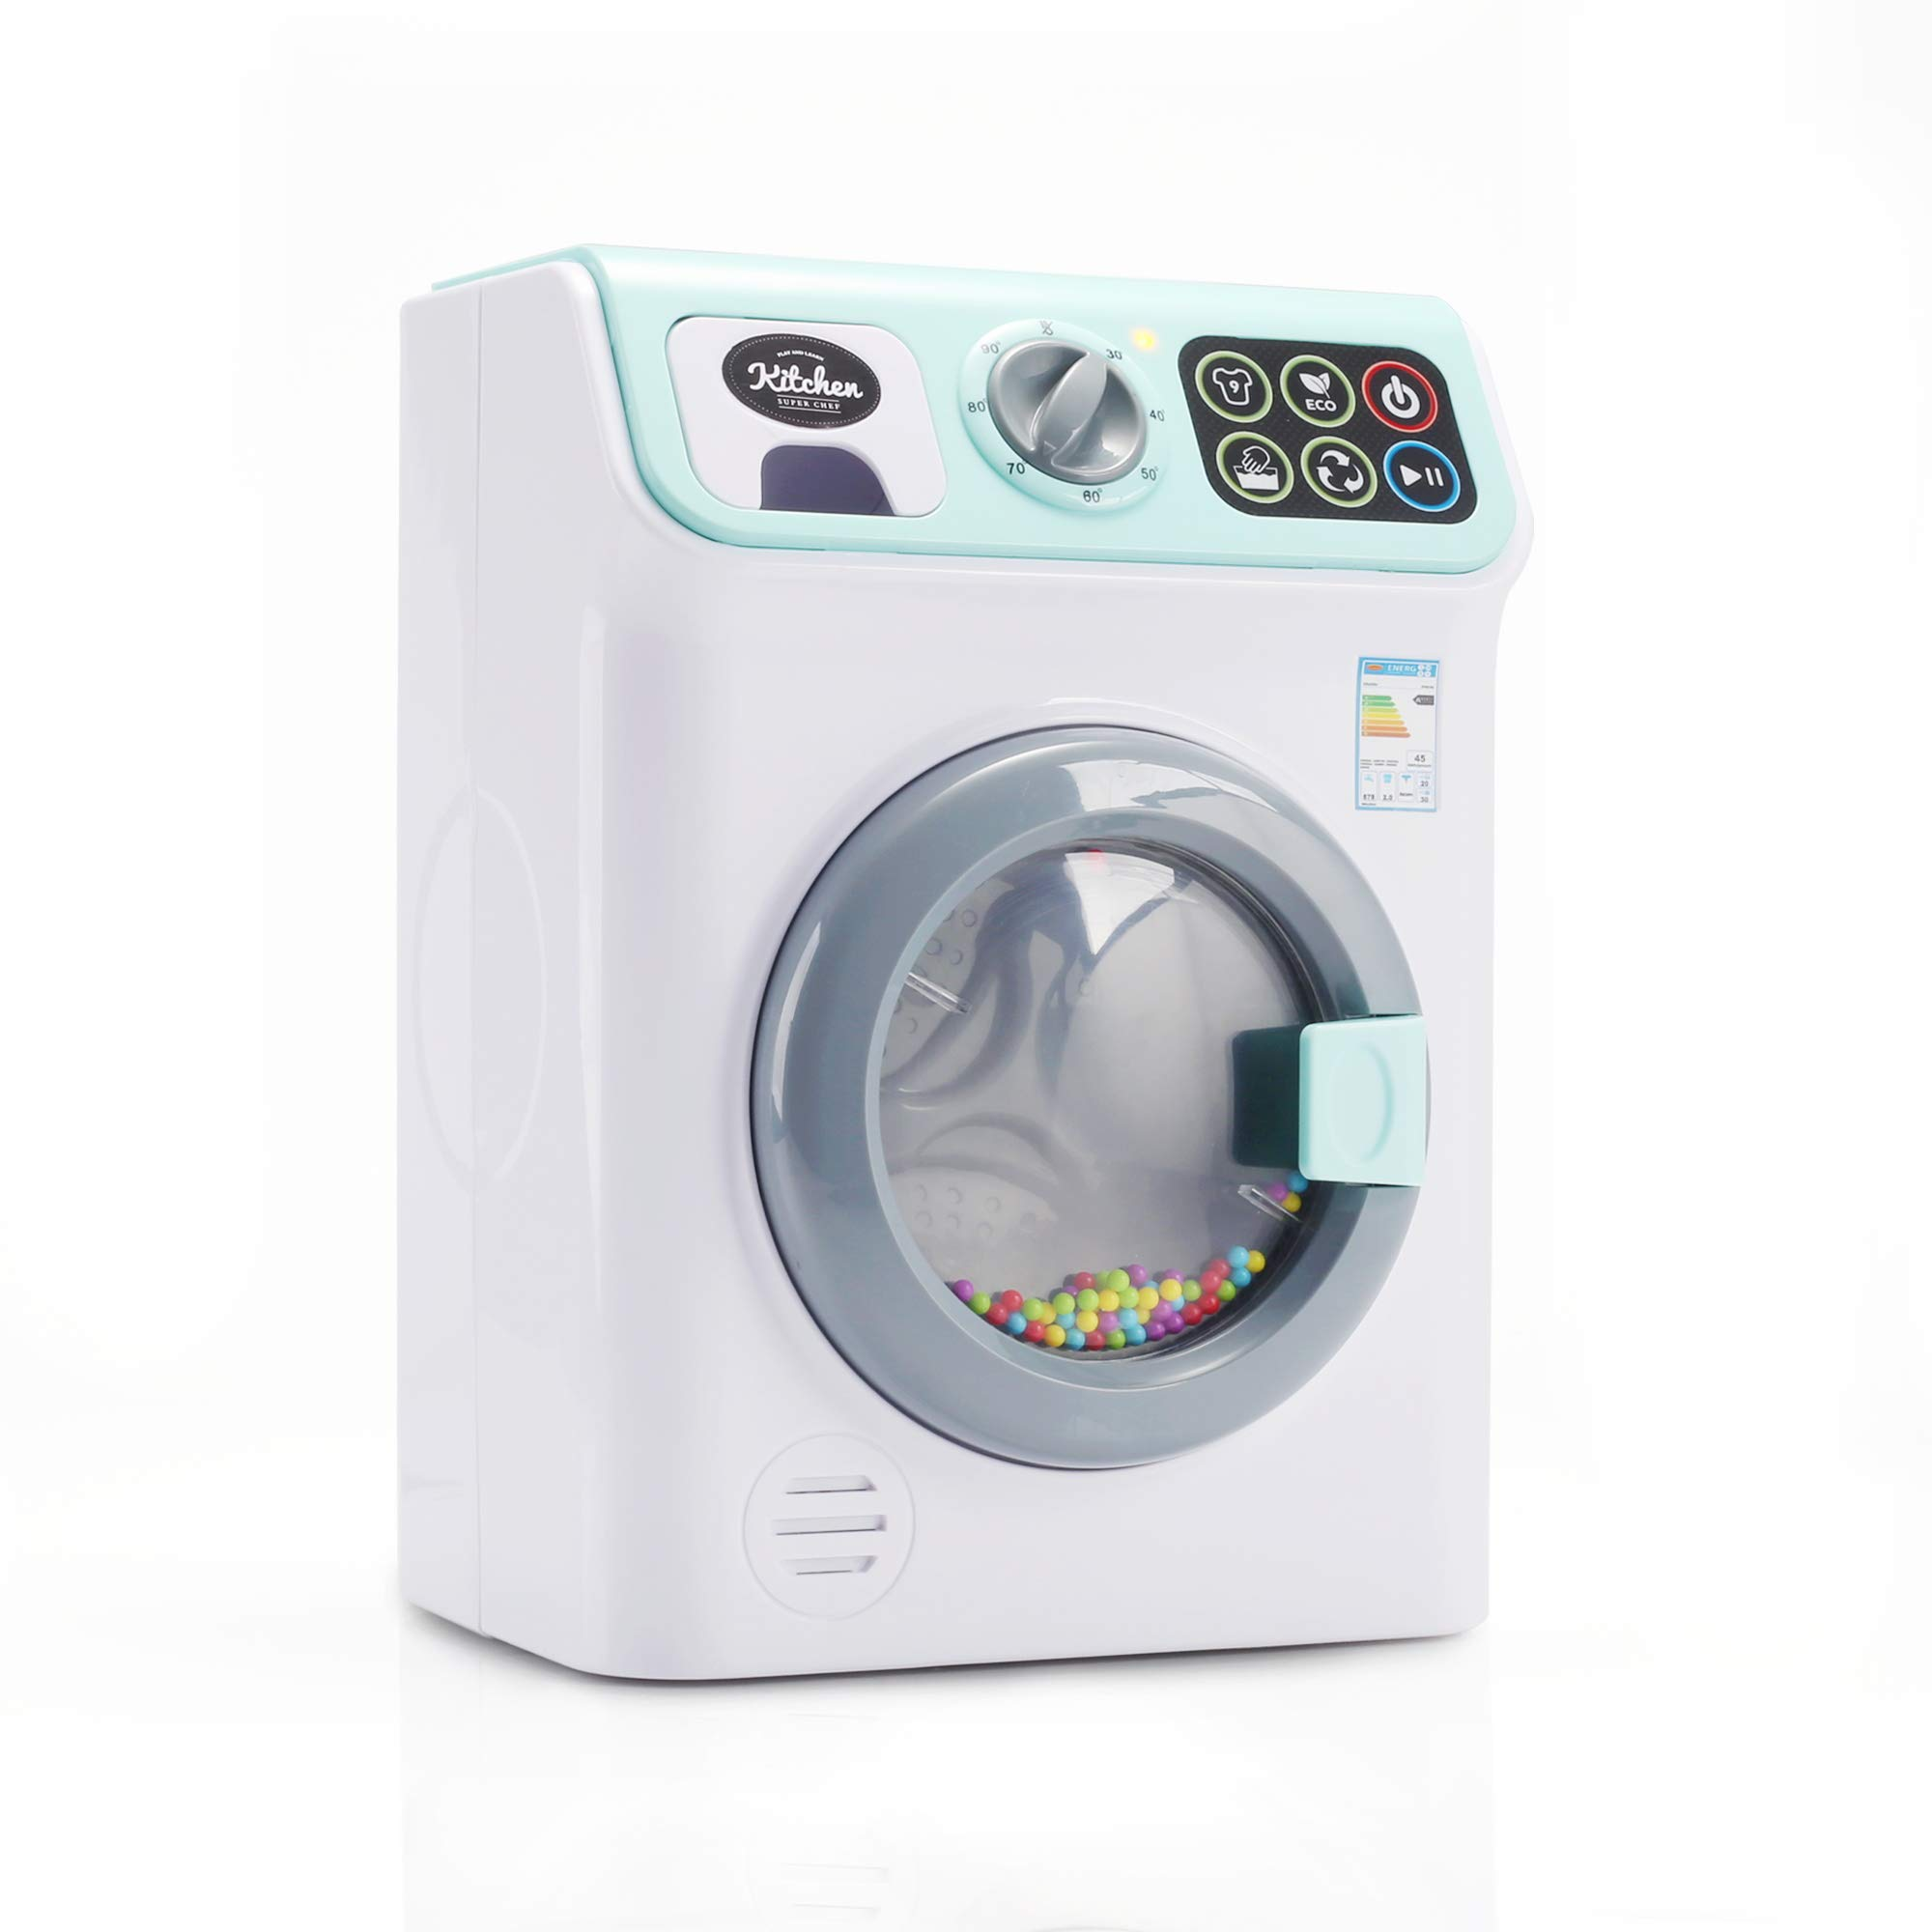 infunbebe Jeeves Jr. Washing Machine Electronic Toy Washer with Realistic Sounds and Functions, Pretend Role Play Appliance Toys for Toddlers